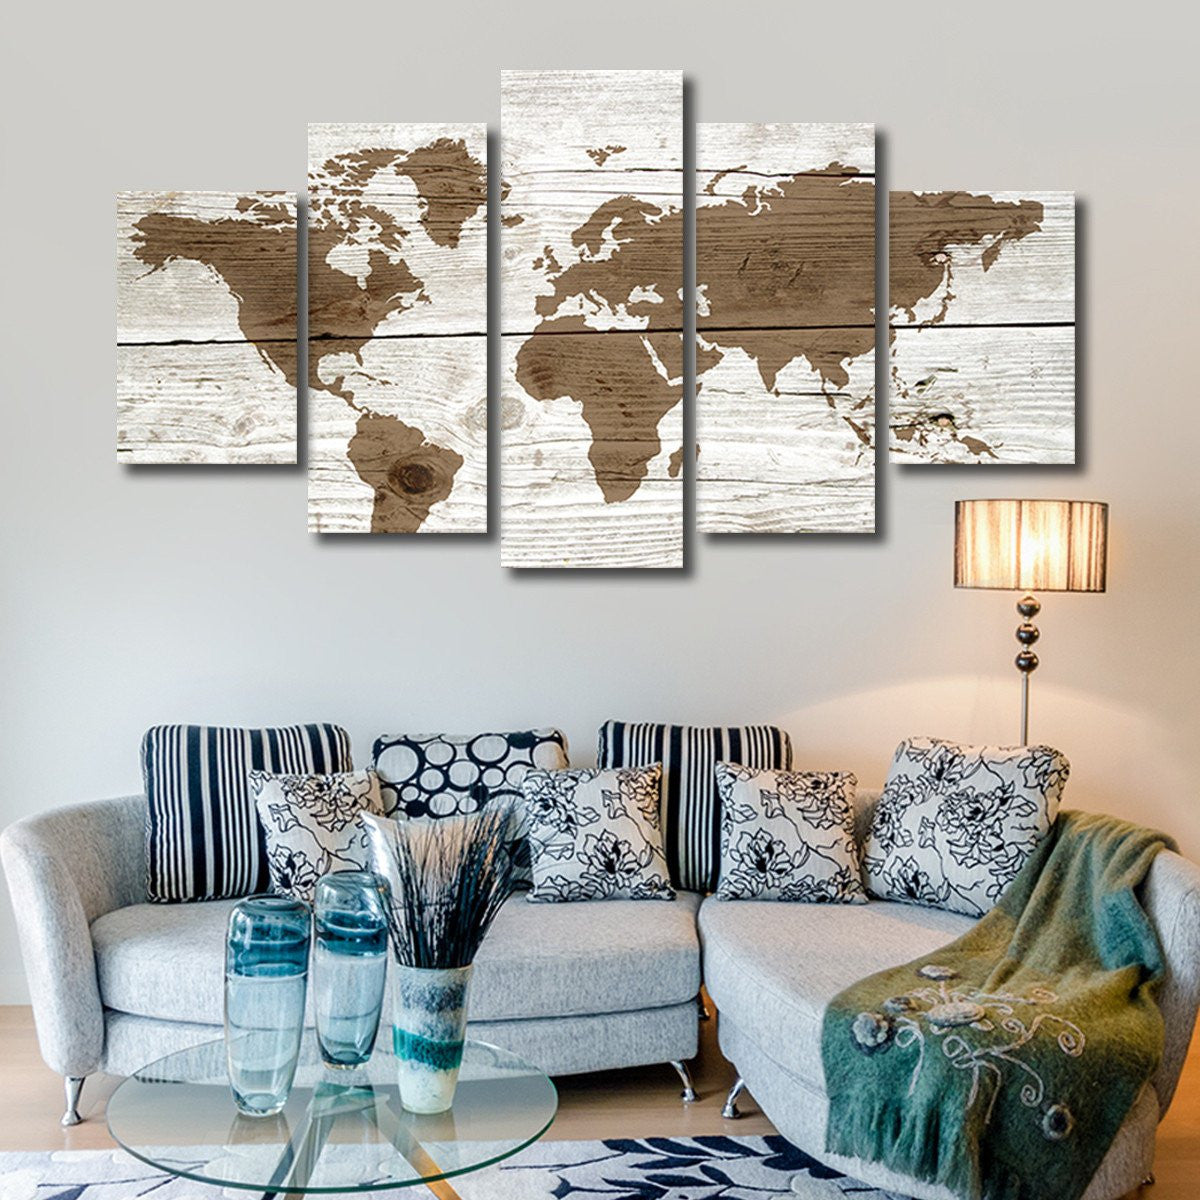 World map canvas prints elephantstock wooden world map multi panel canvas wall art worldmap gumiabroncs Choice Image